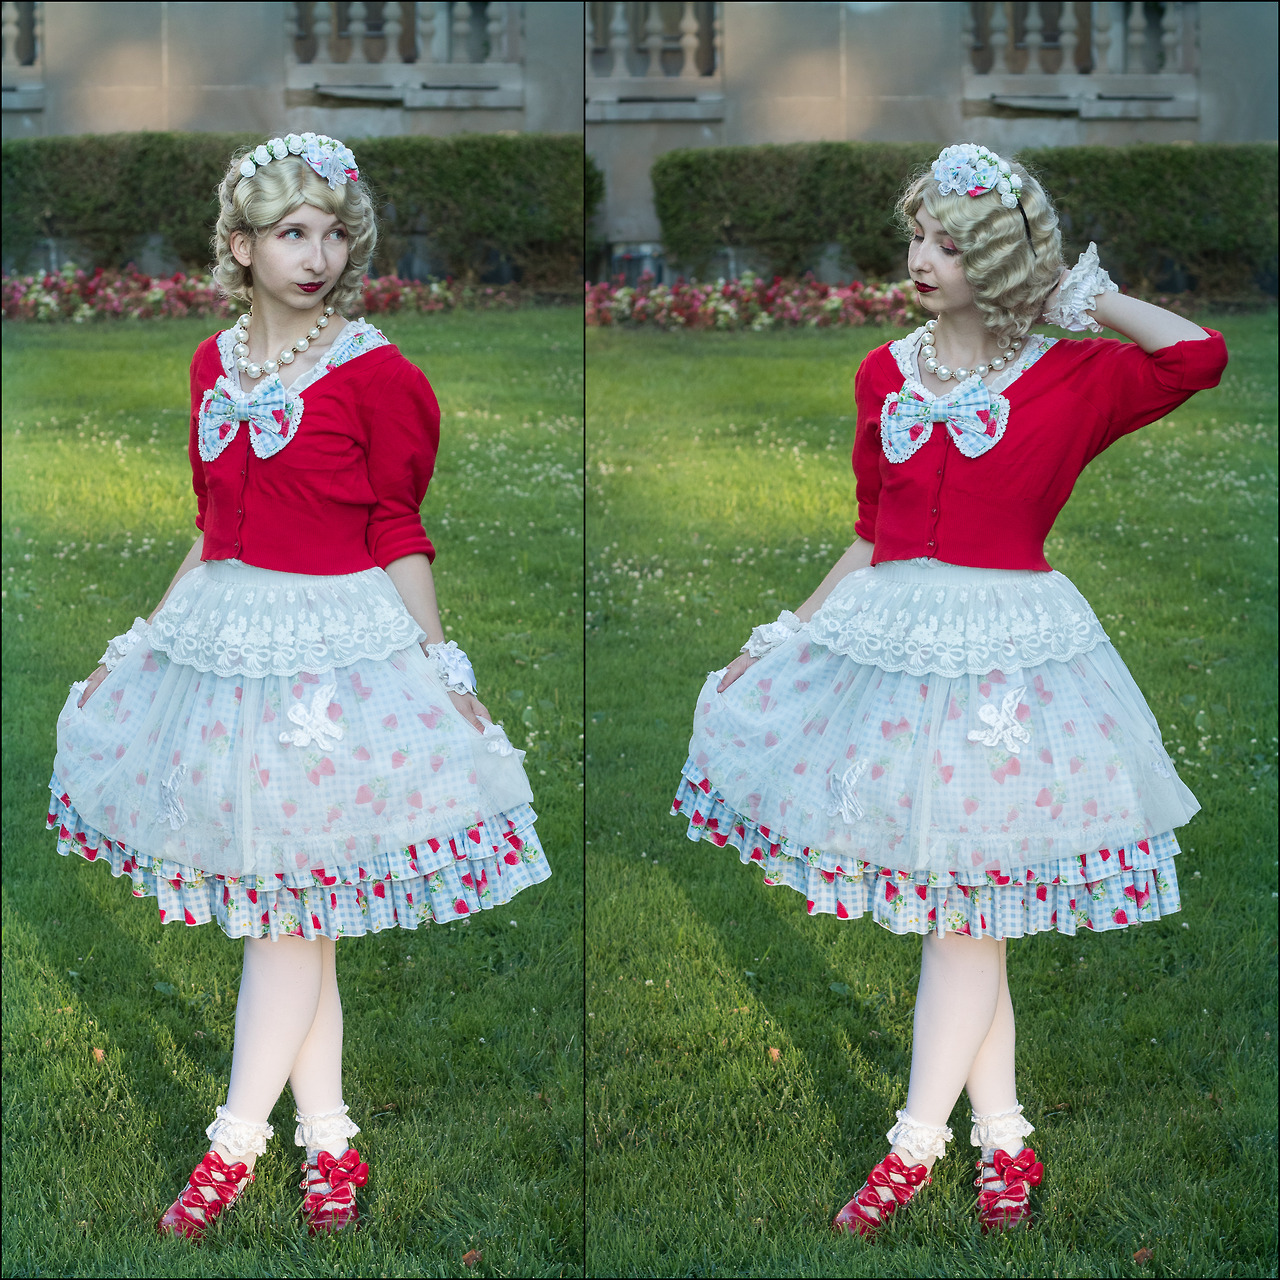 sootpuff: